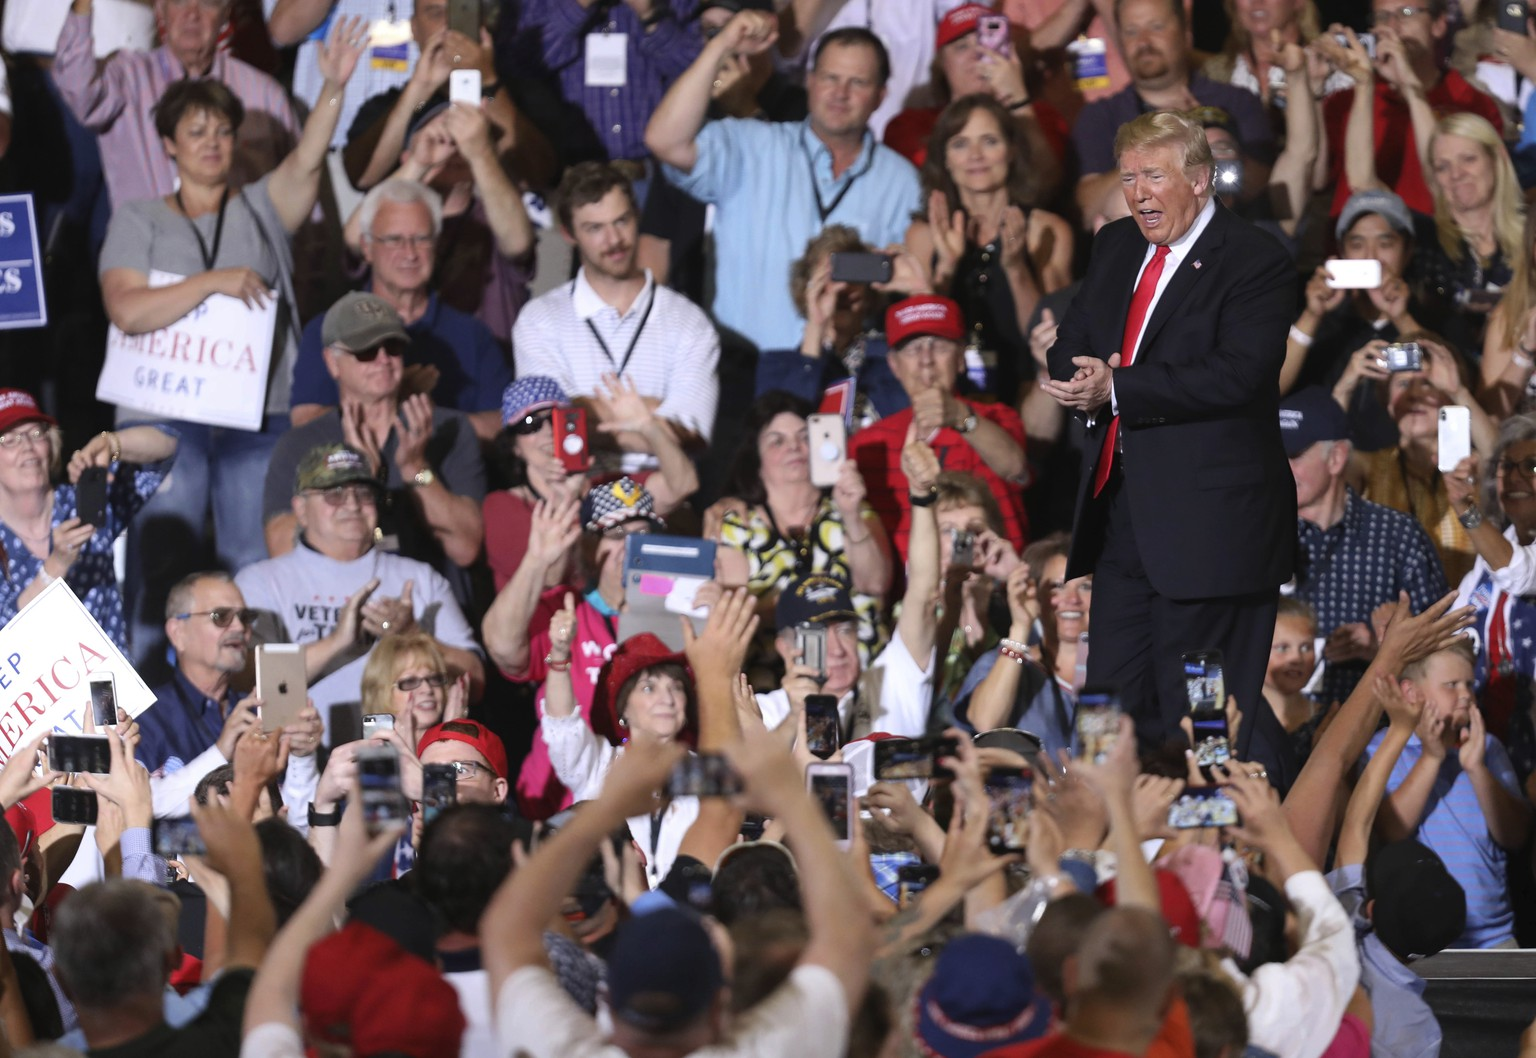 President Donald Trump applauds the audience after his remarks during a rally at the Four Seasons Arena at Montana ExpoPark, Thursday, July 5, 2018, in Great Falls, Mont., in support of Rep. Greg Gianforte, R-Mont., and GOP Senate candidate Matt Rosendale. (AP Photo/Jim Urquhart)